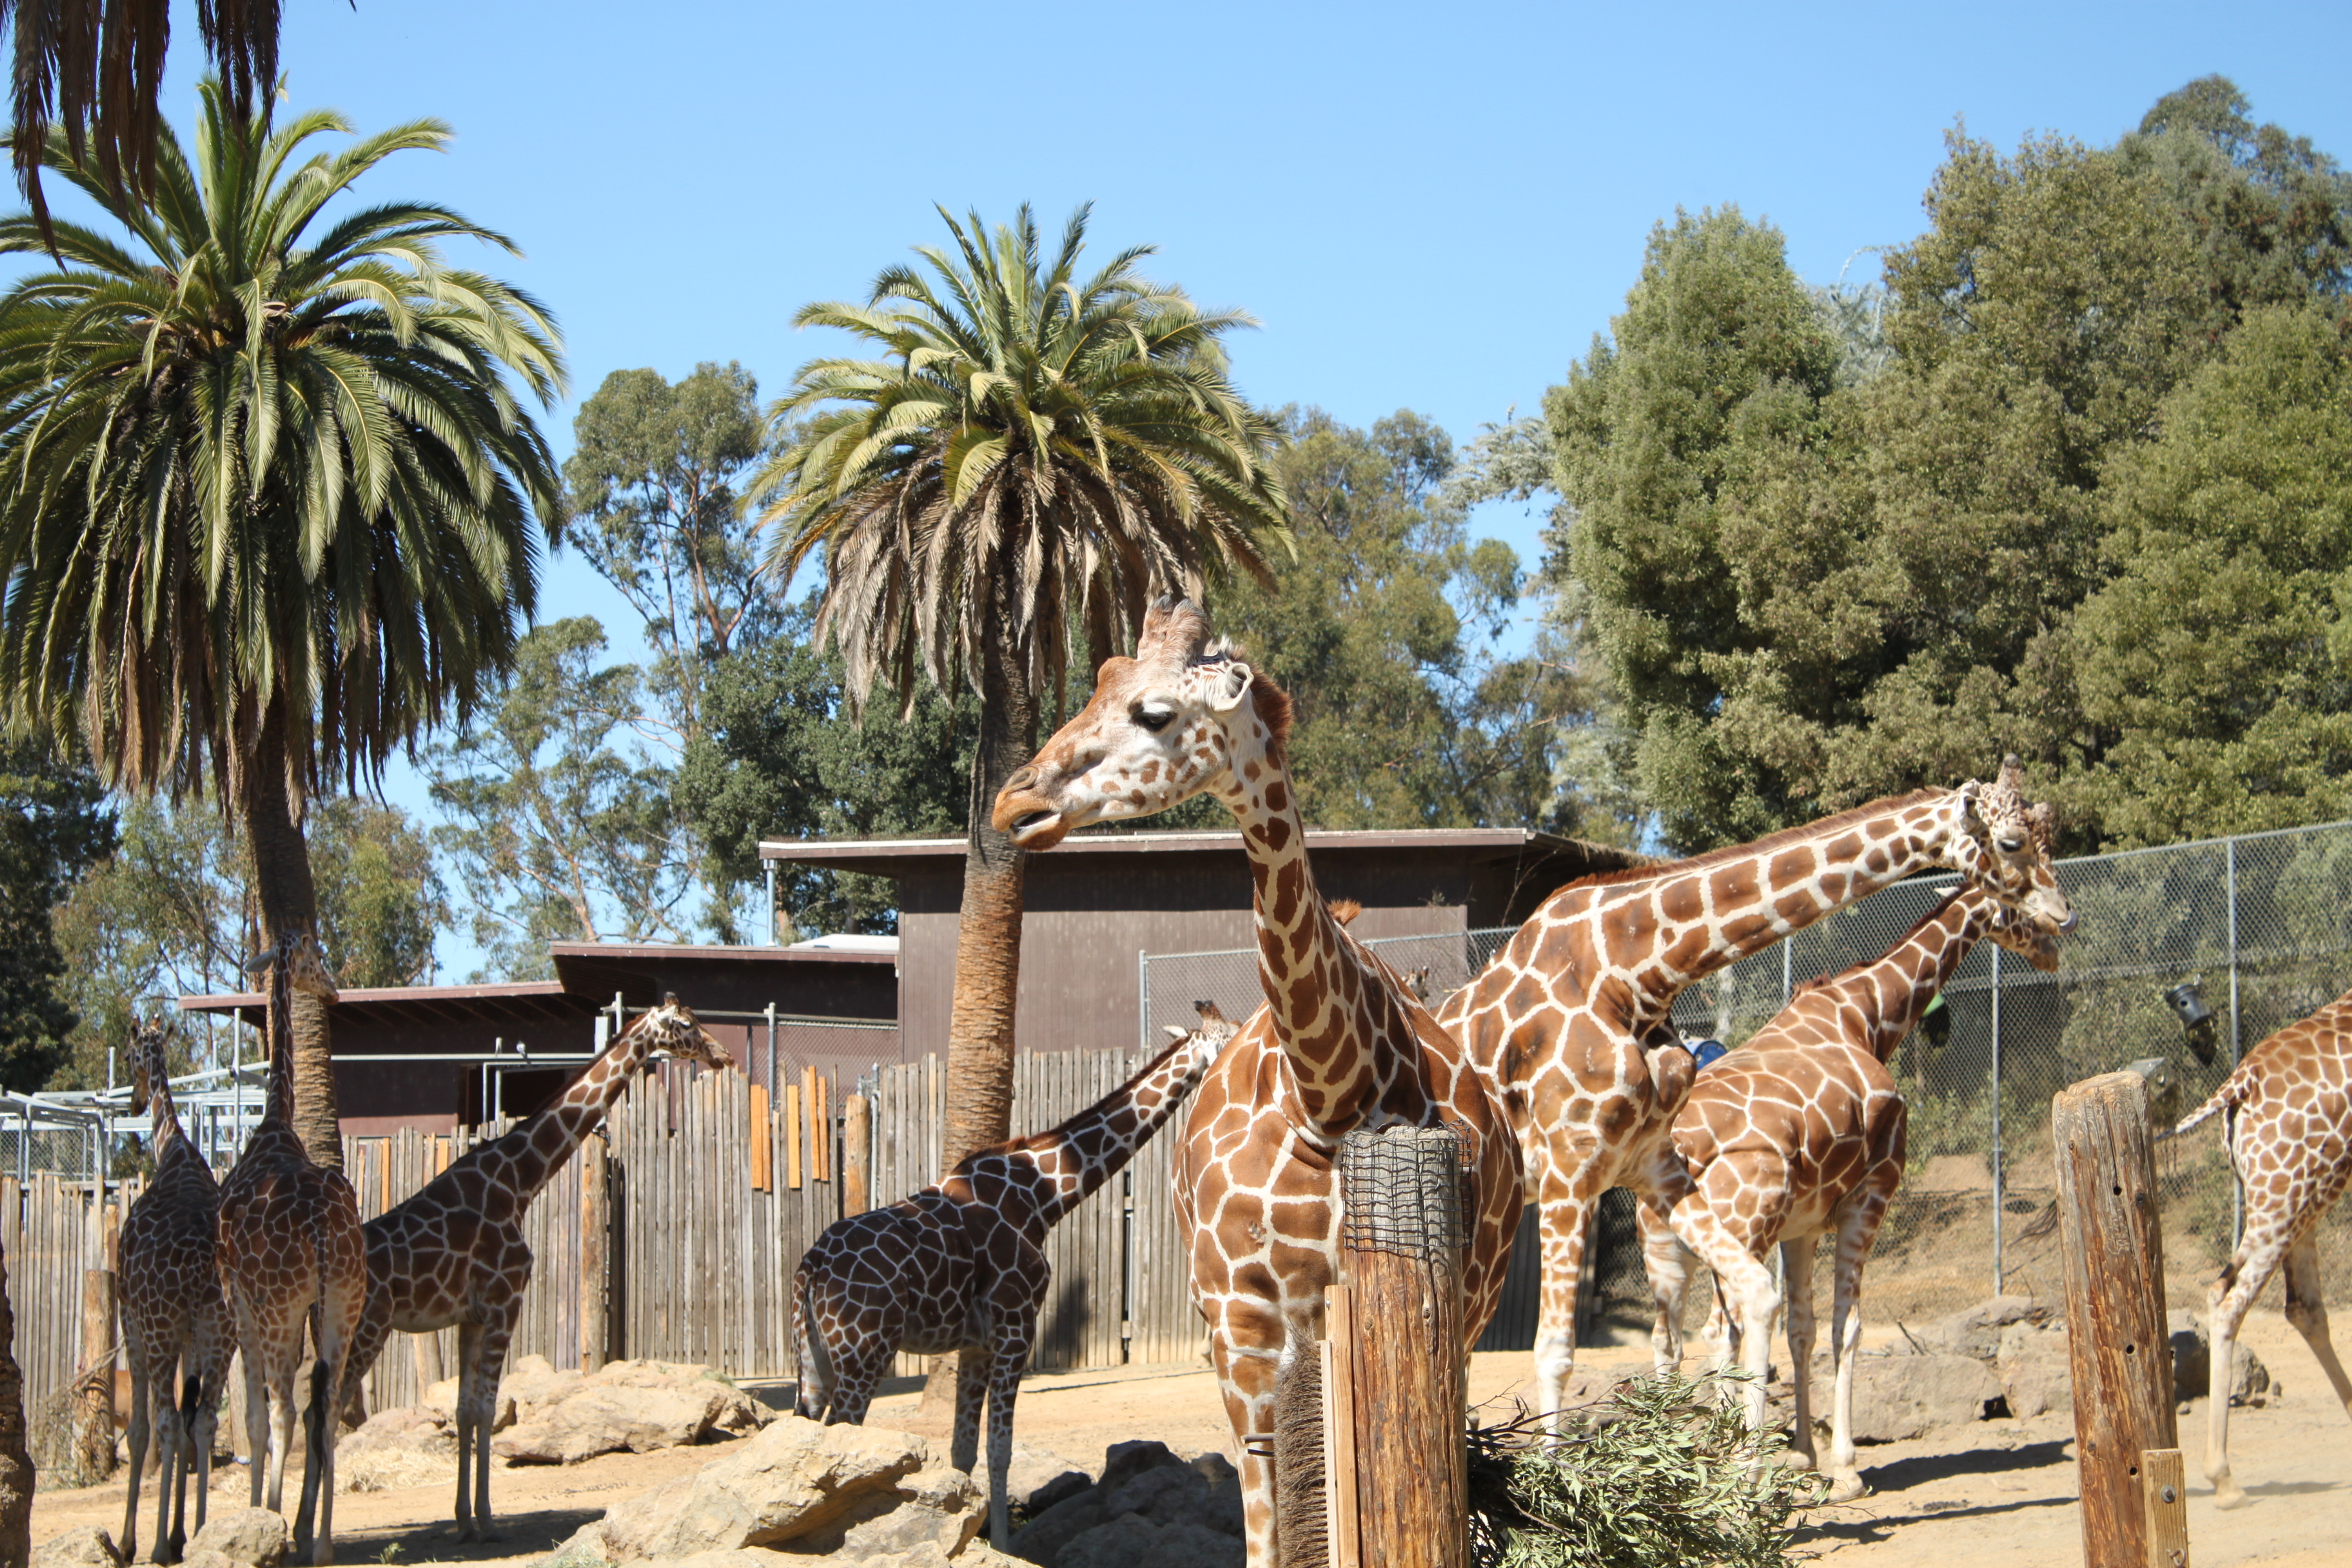 oakland zoos newest addition - HD 3456×2304